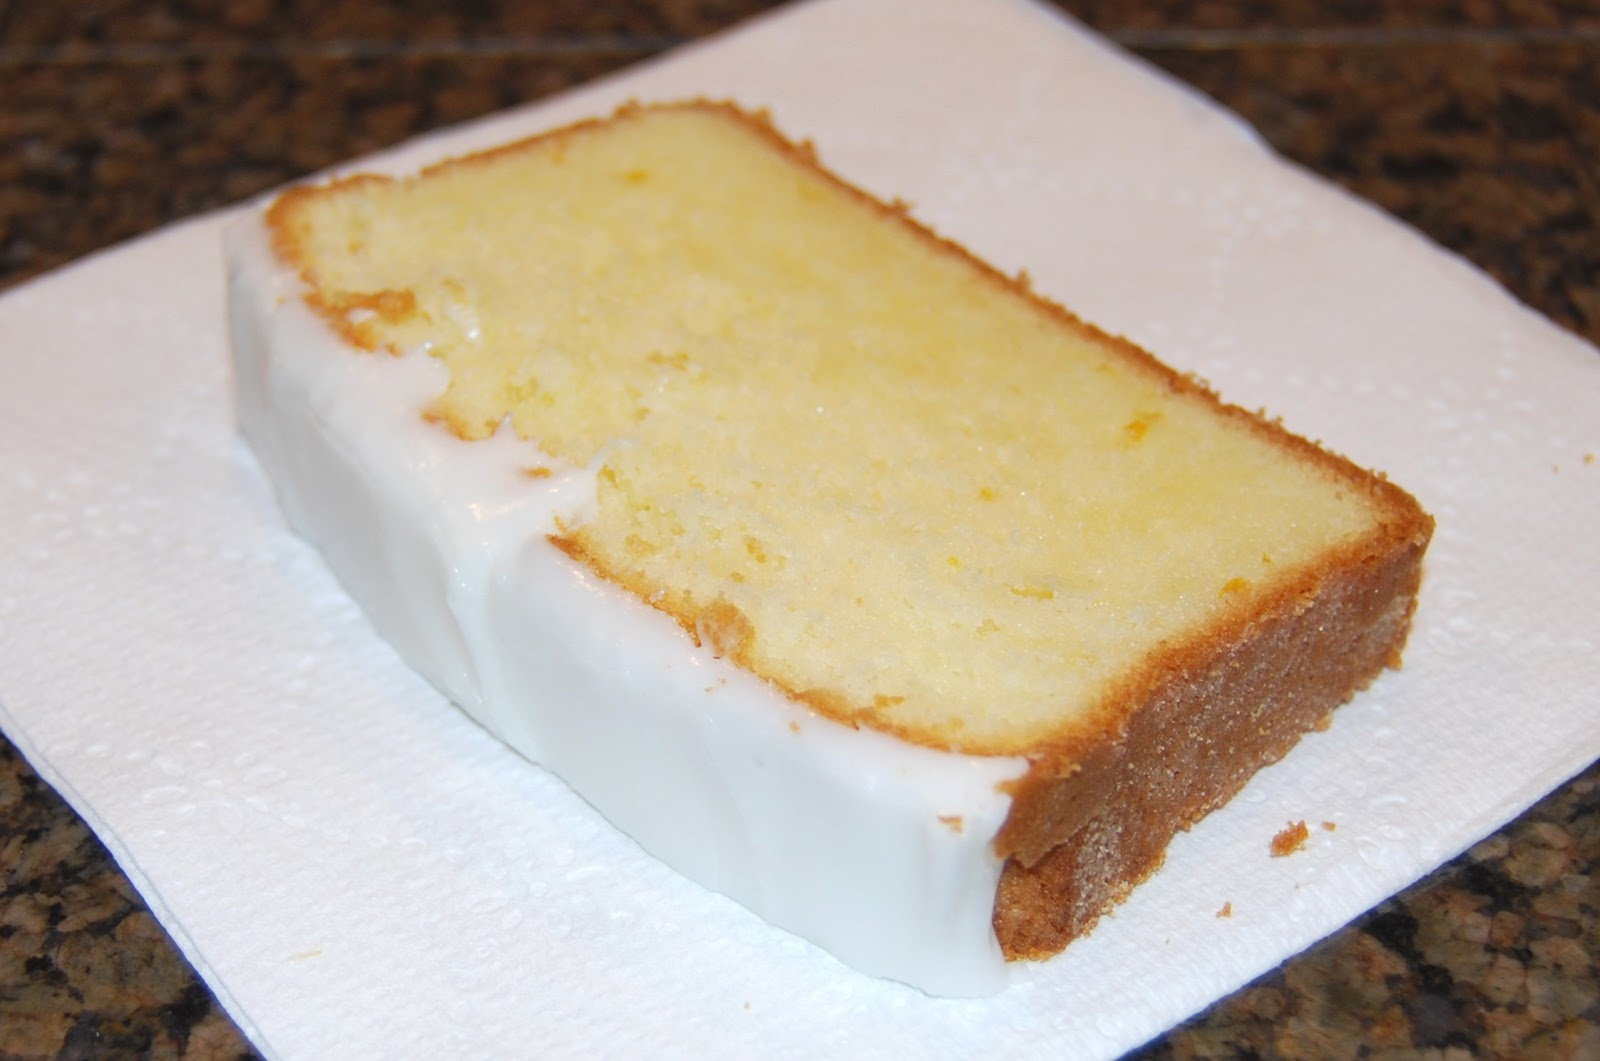 Valerie's Patch-Work: Iced Lemon Pound Cake